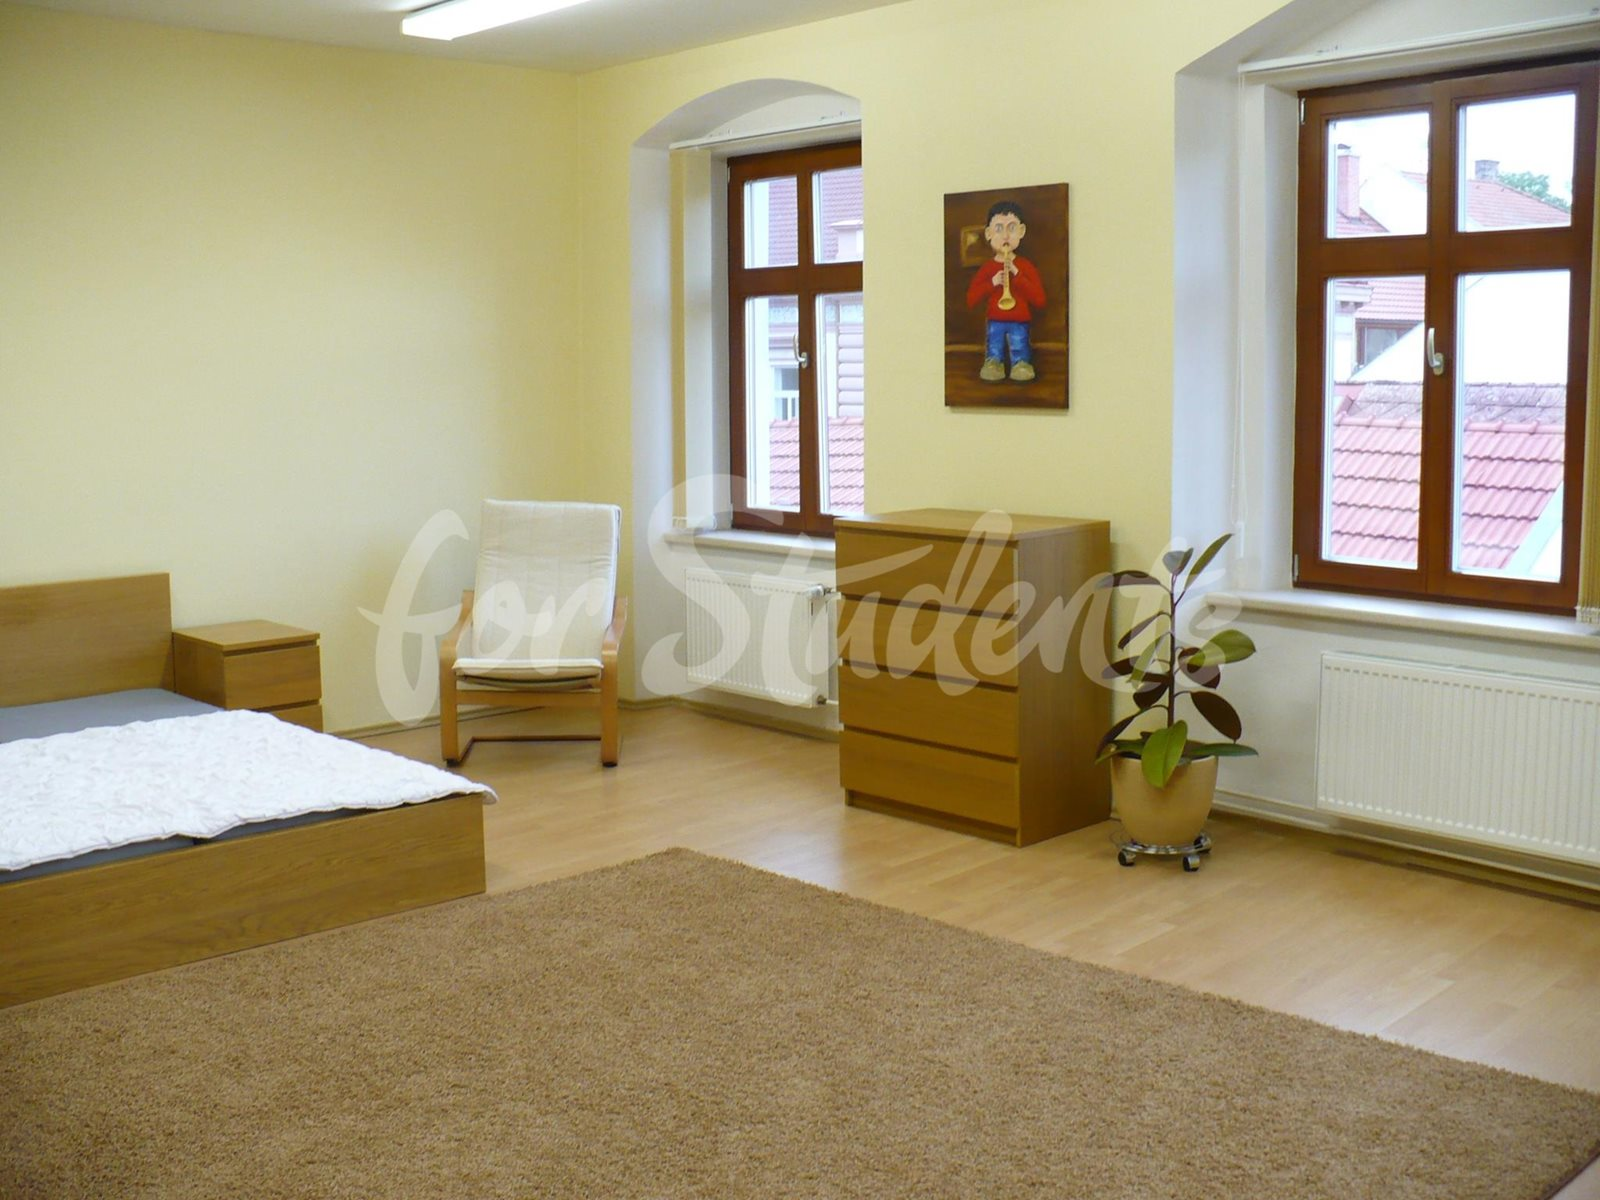 Two bedroom apartment in the Old Town, Hradec Králové